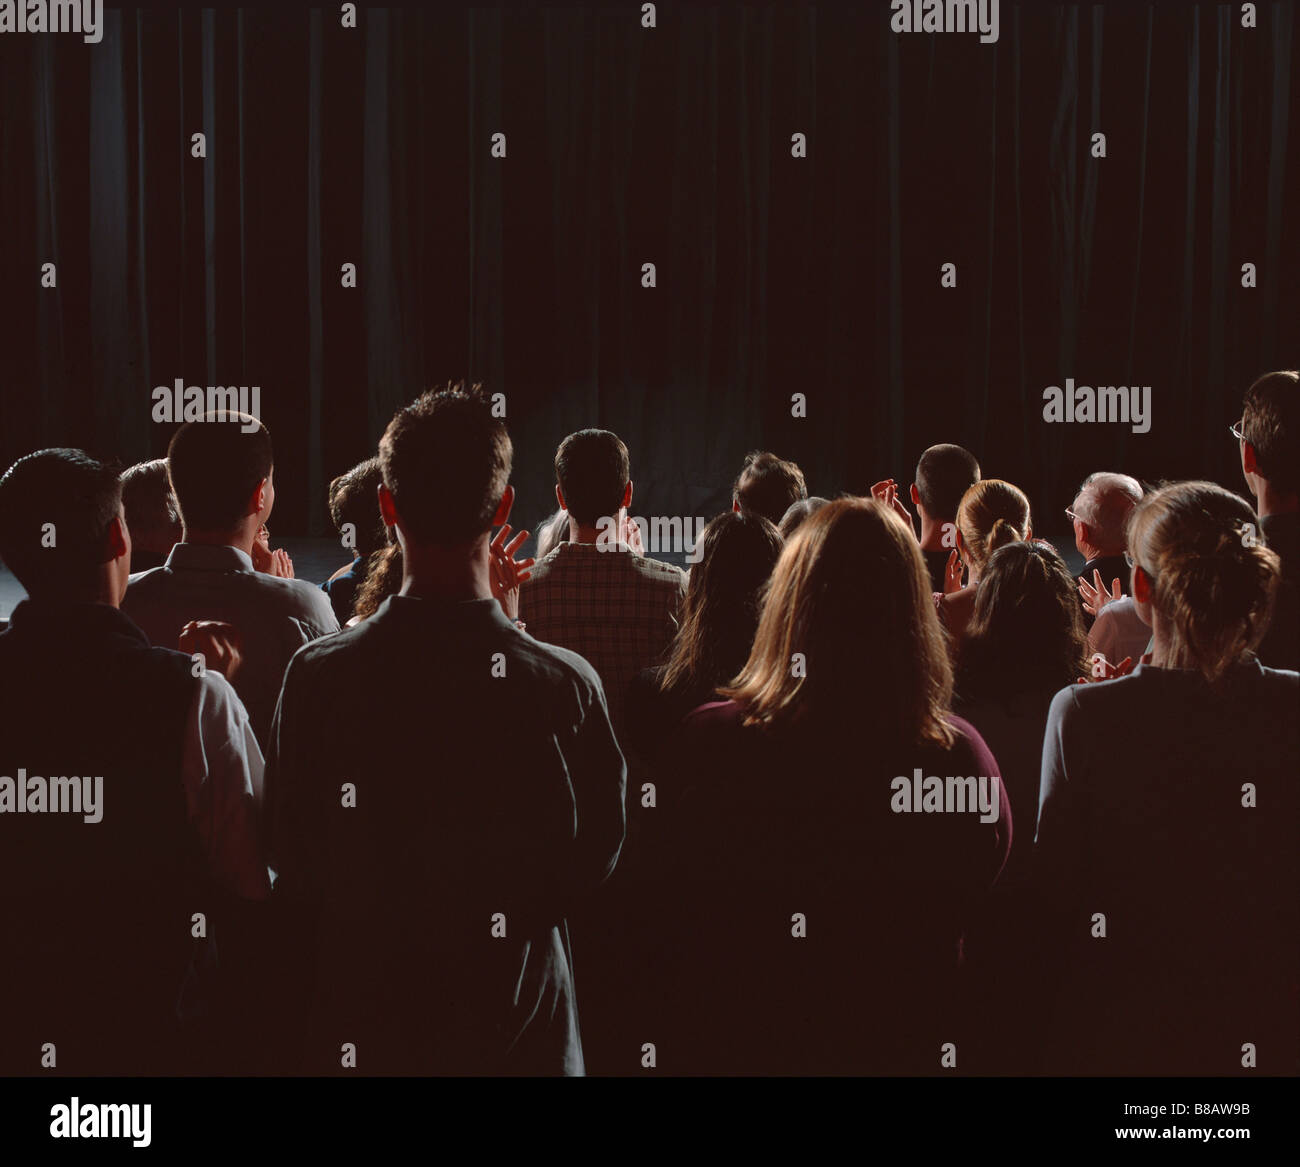 FV3473, Steve Lawrence; Audience Standing  Applauding - Stock Image